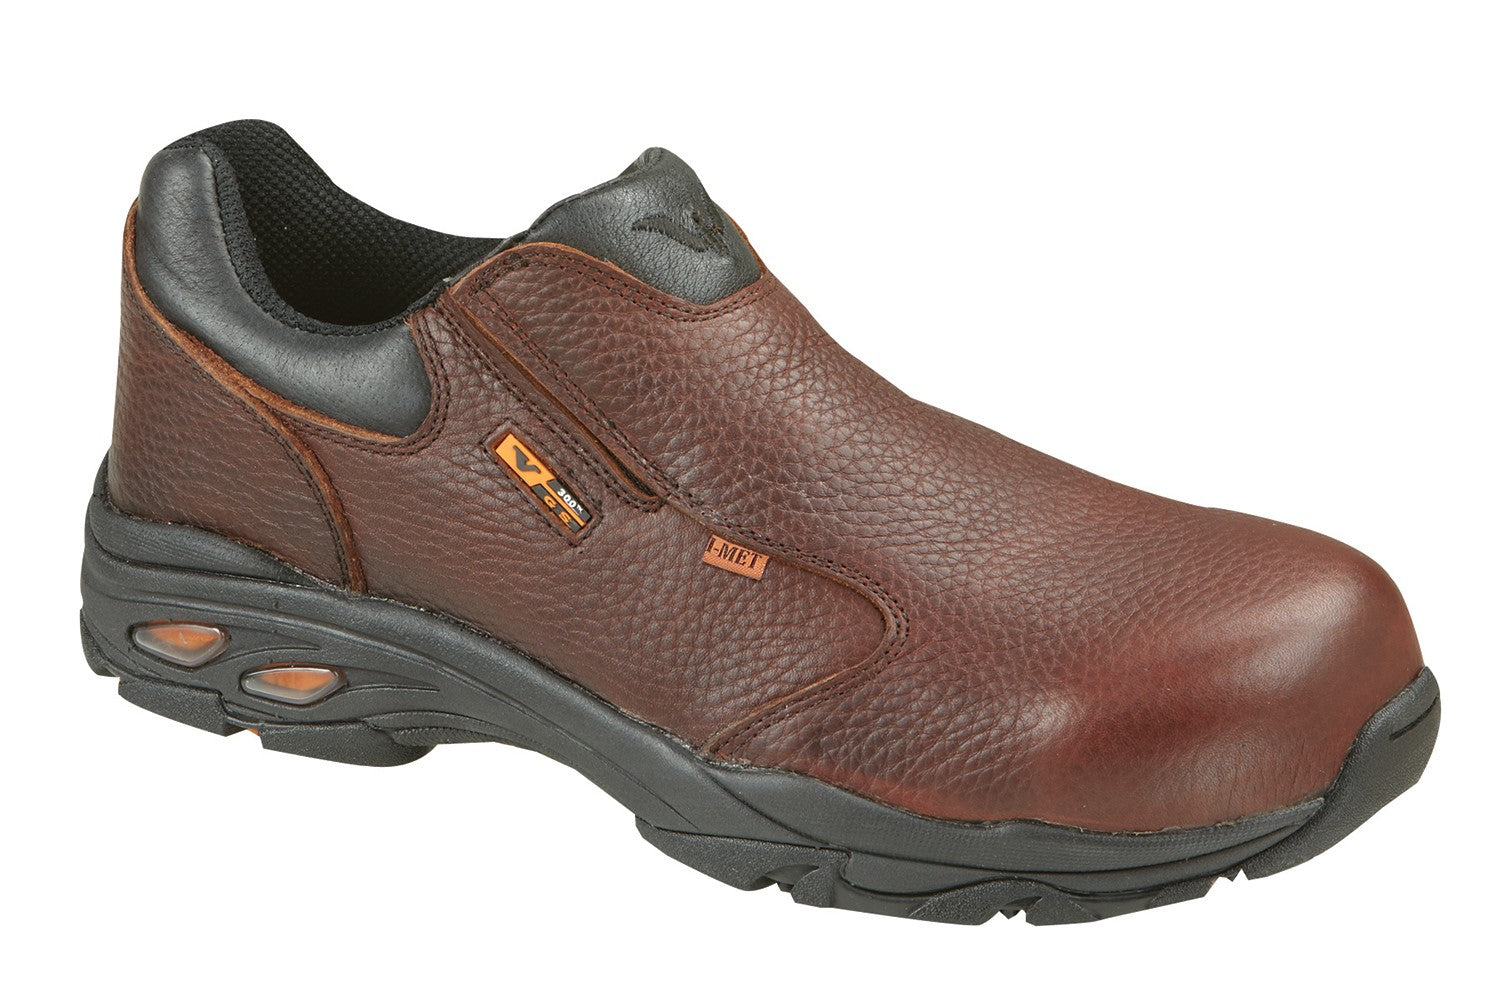 'Thorogood' Men's Slip-On Internal Metguard Shoe - Brown